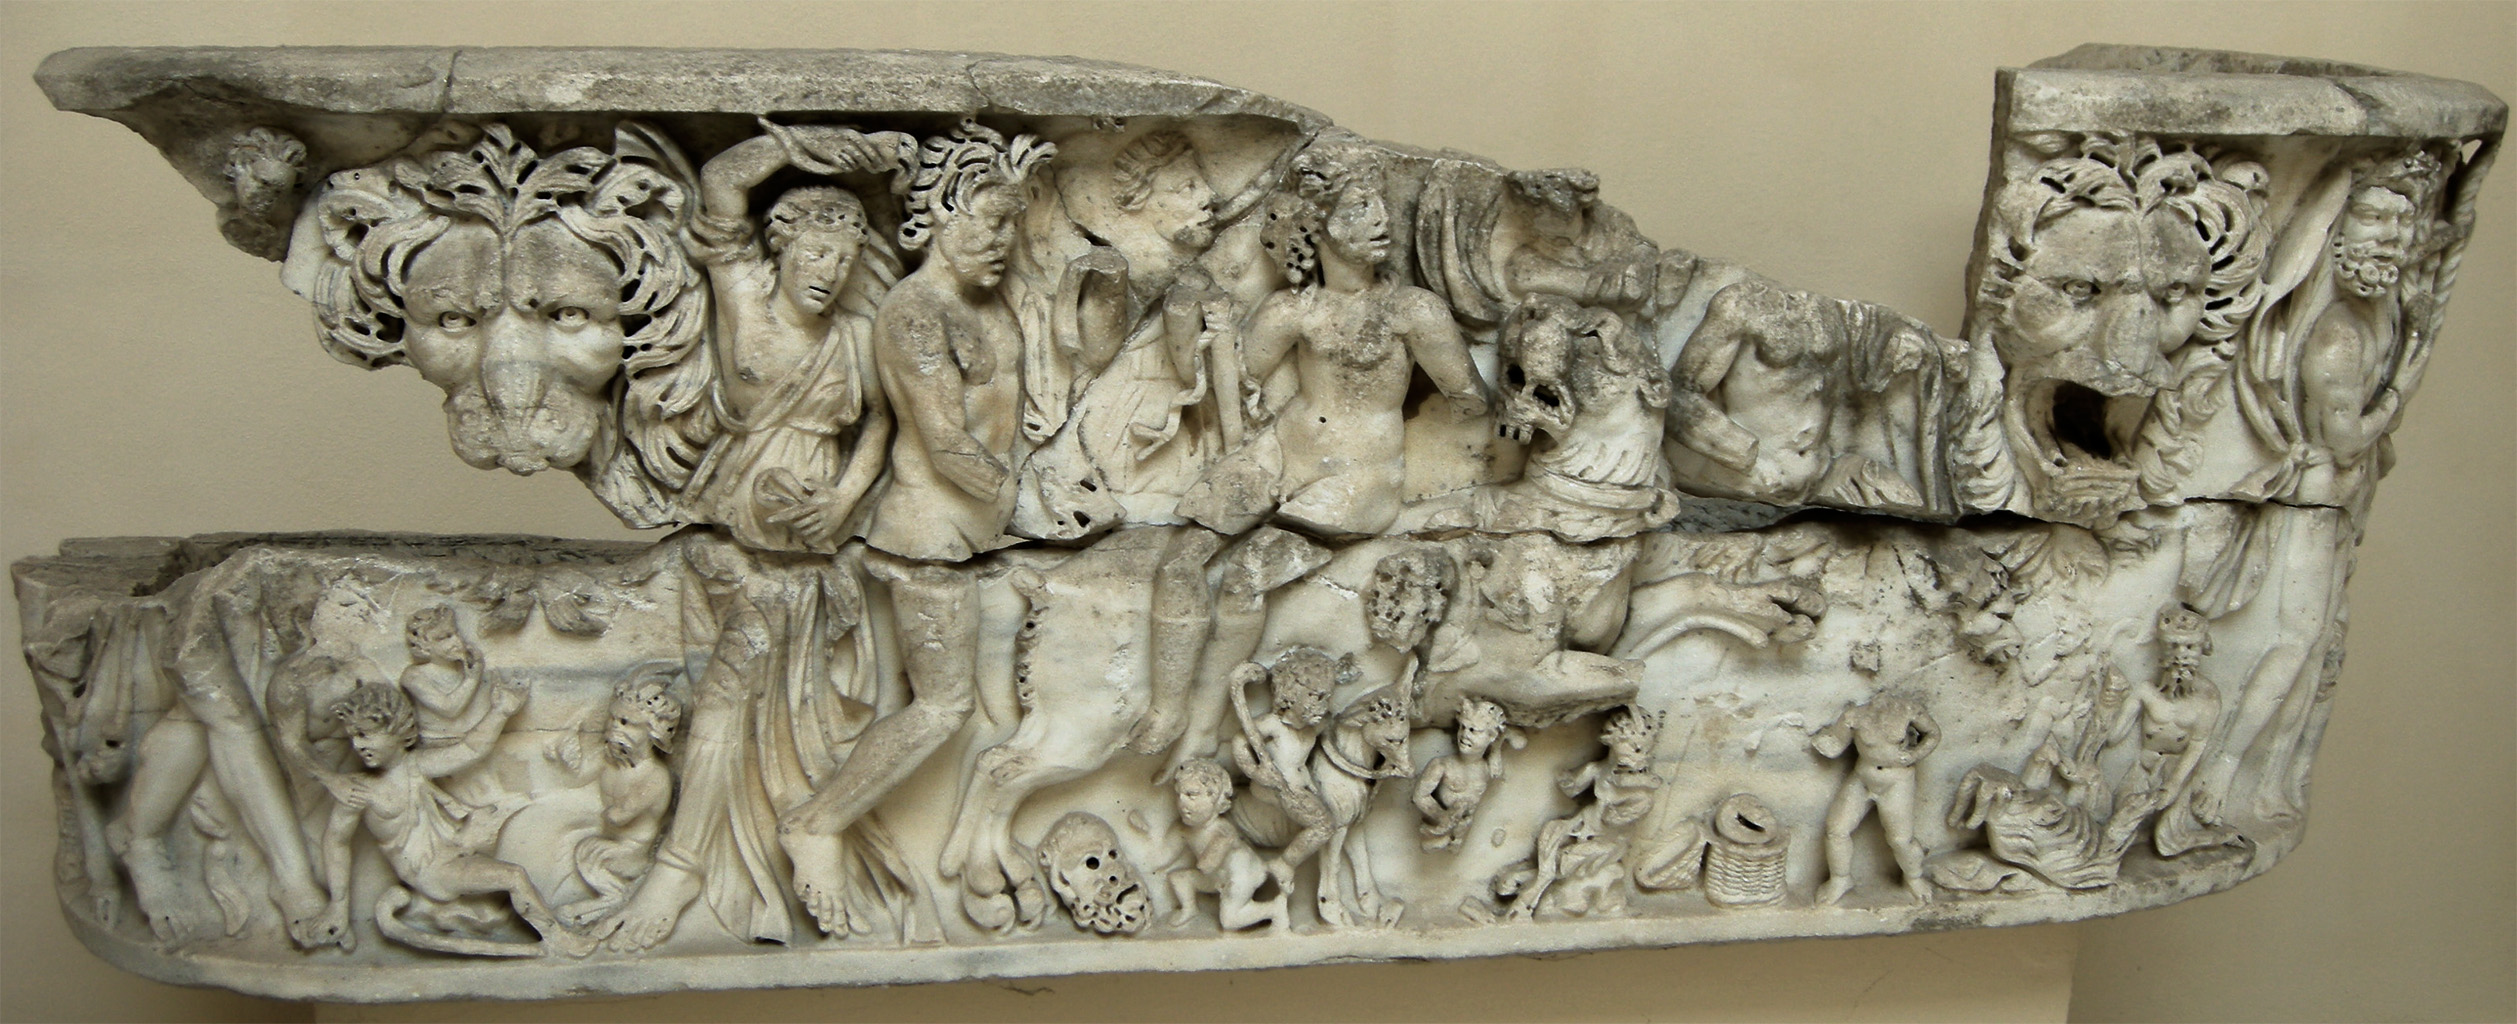 Lenos-sarcophagus with Dionysus on a panther (the front relief). Marble. Ca. 230—260 CE.  Inv. No. 1140. Ostia, Archaeological Museum